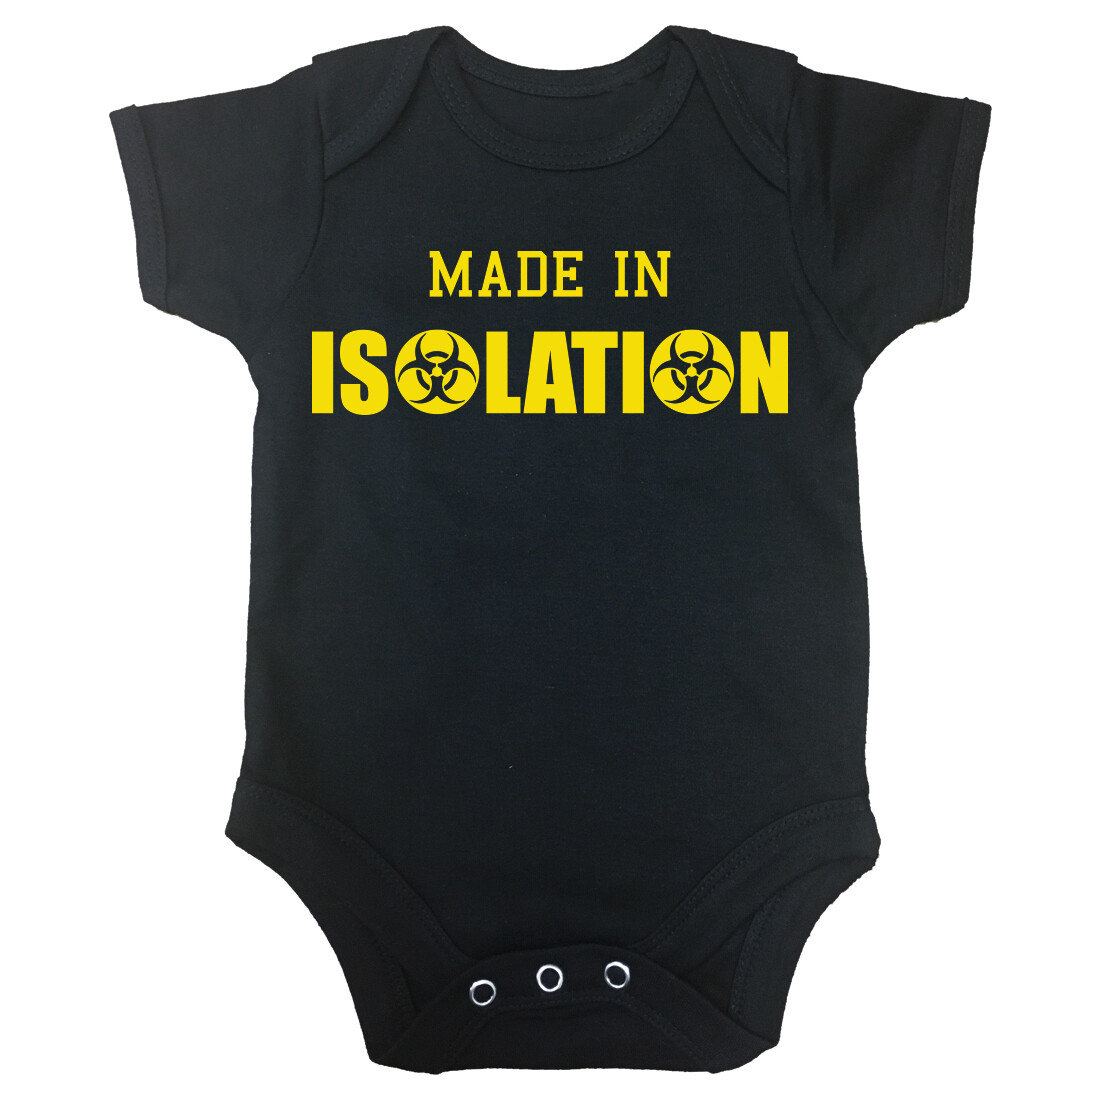 'Made in Isolation' Baby Grow